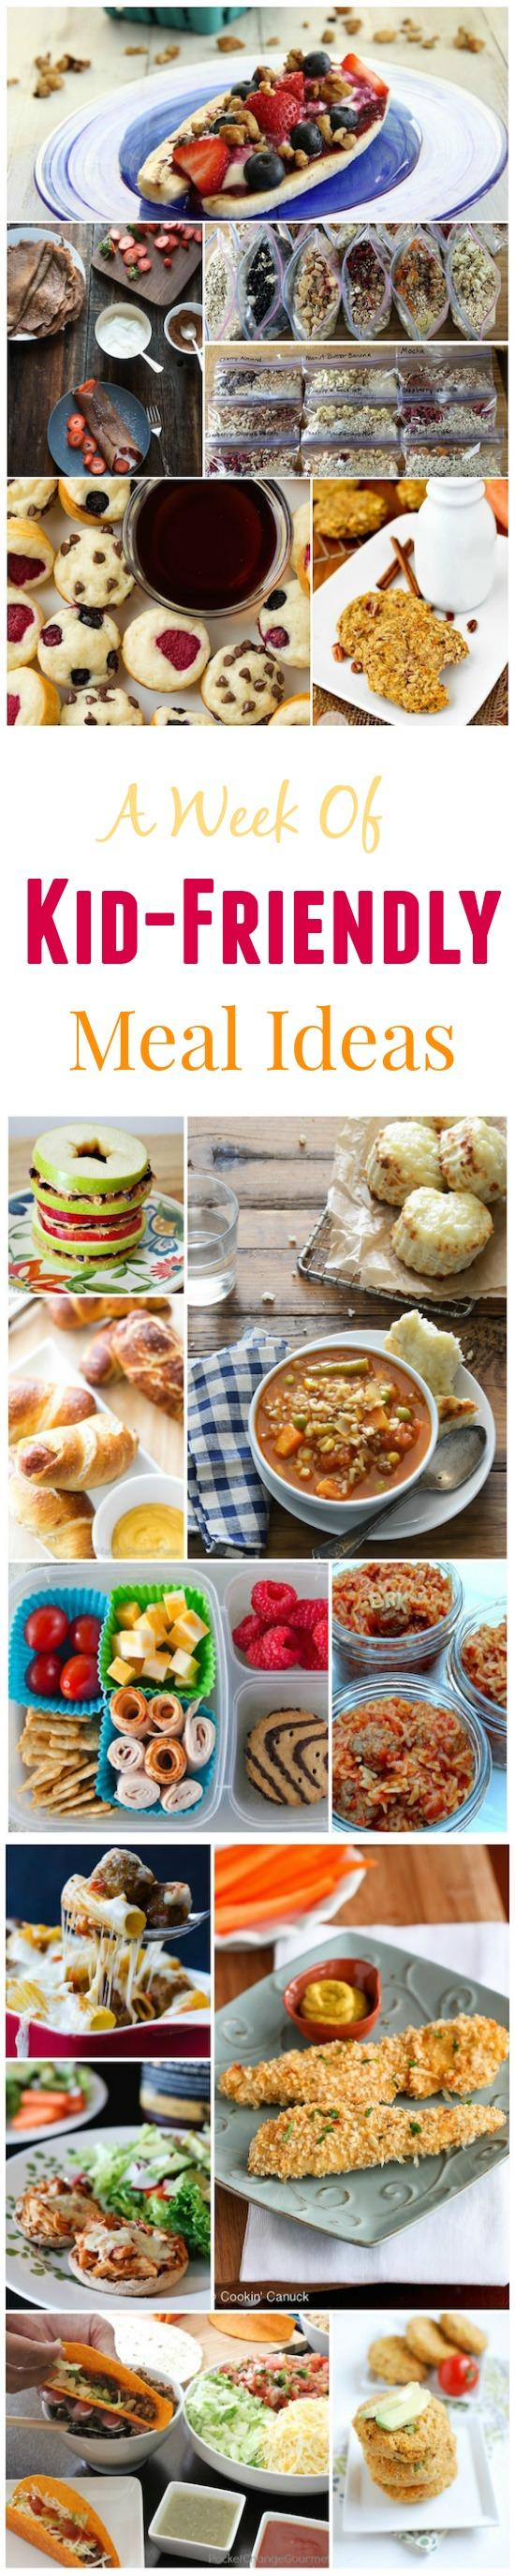 A Week of Kid-Friendly Meal Ideas to inspire you!